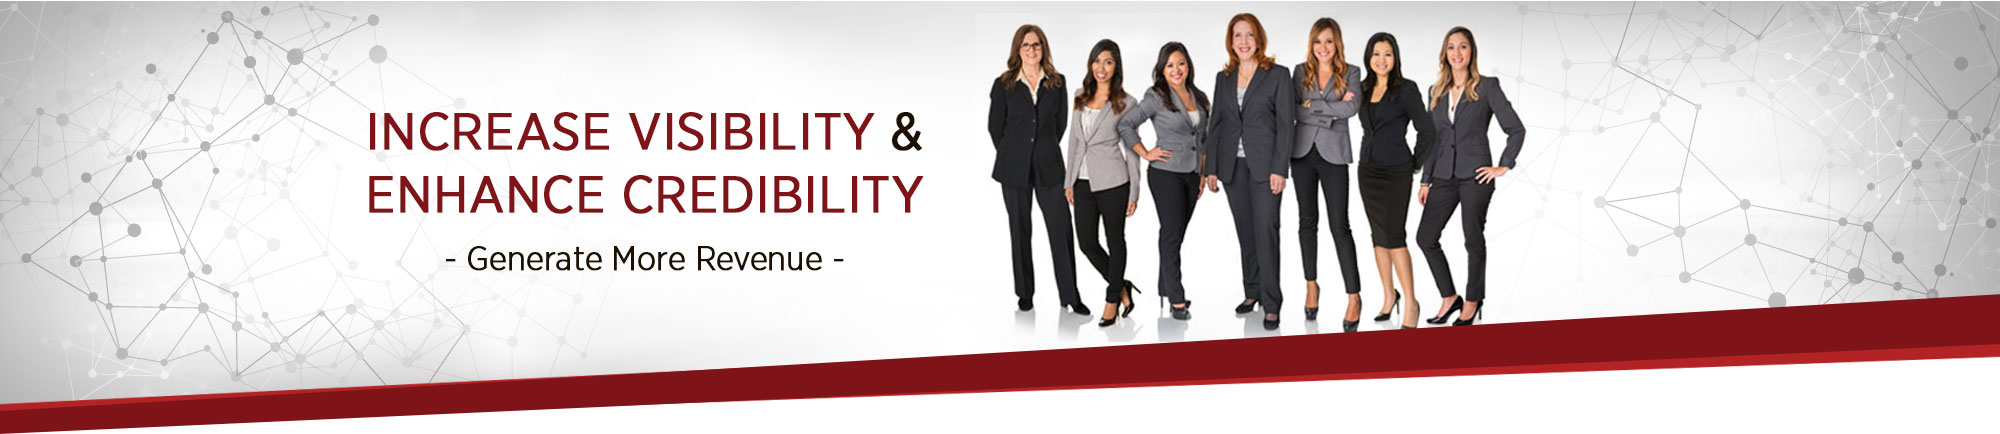 Increase Visibility & Enhance Credibility